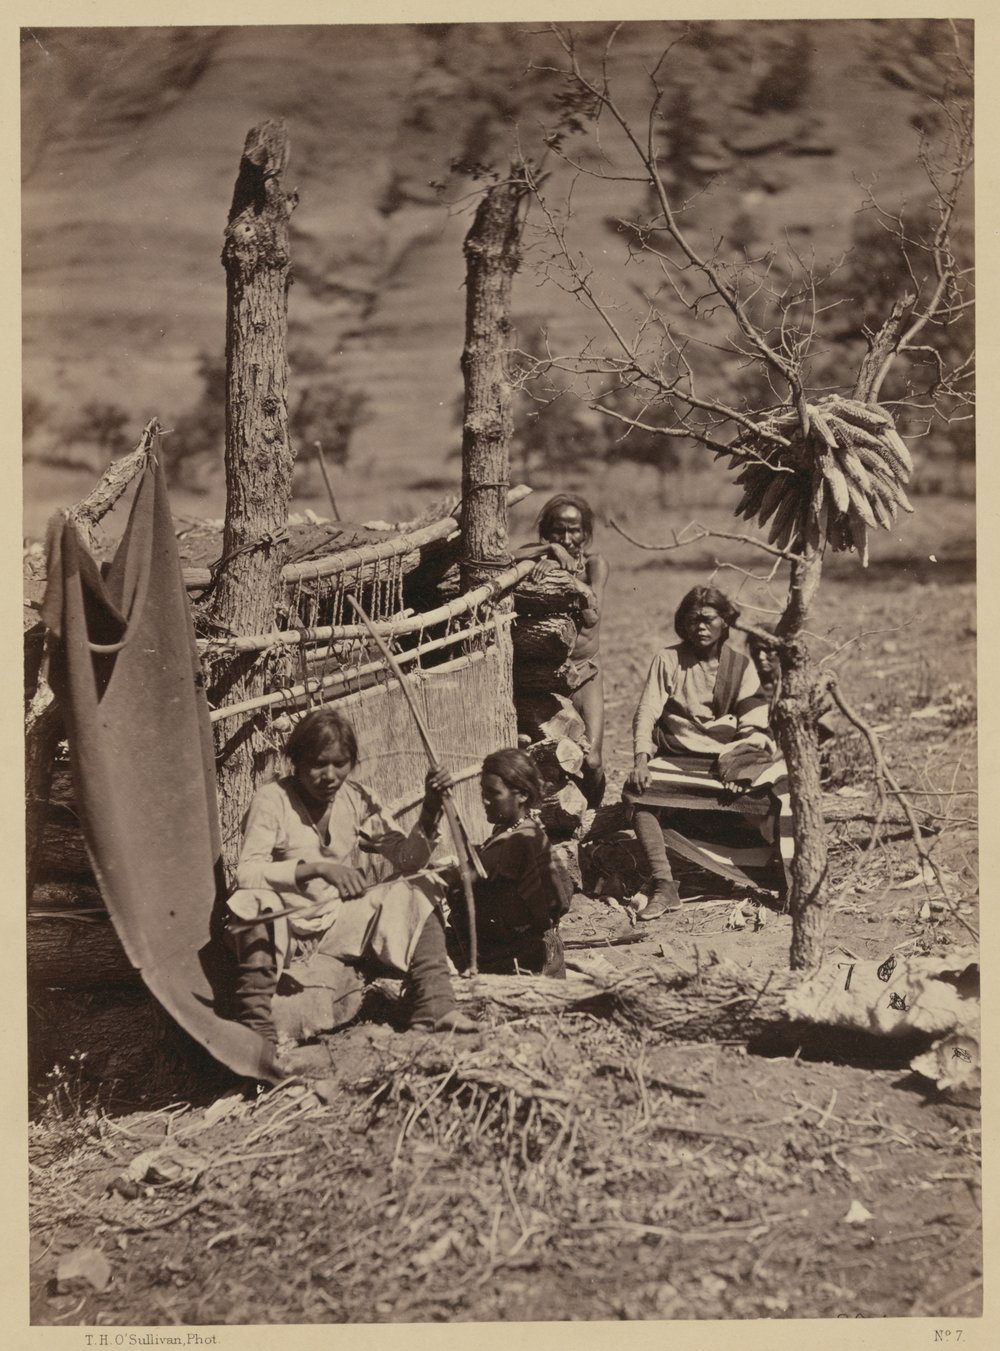 Aboriginal life among the Navajoe Indians.  Near old Fort Defiance, N.M. / Library of Congress / 1873, T. H. O'Sullivan.